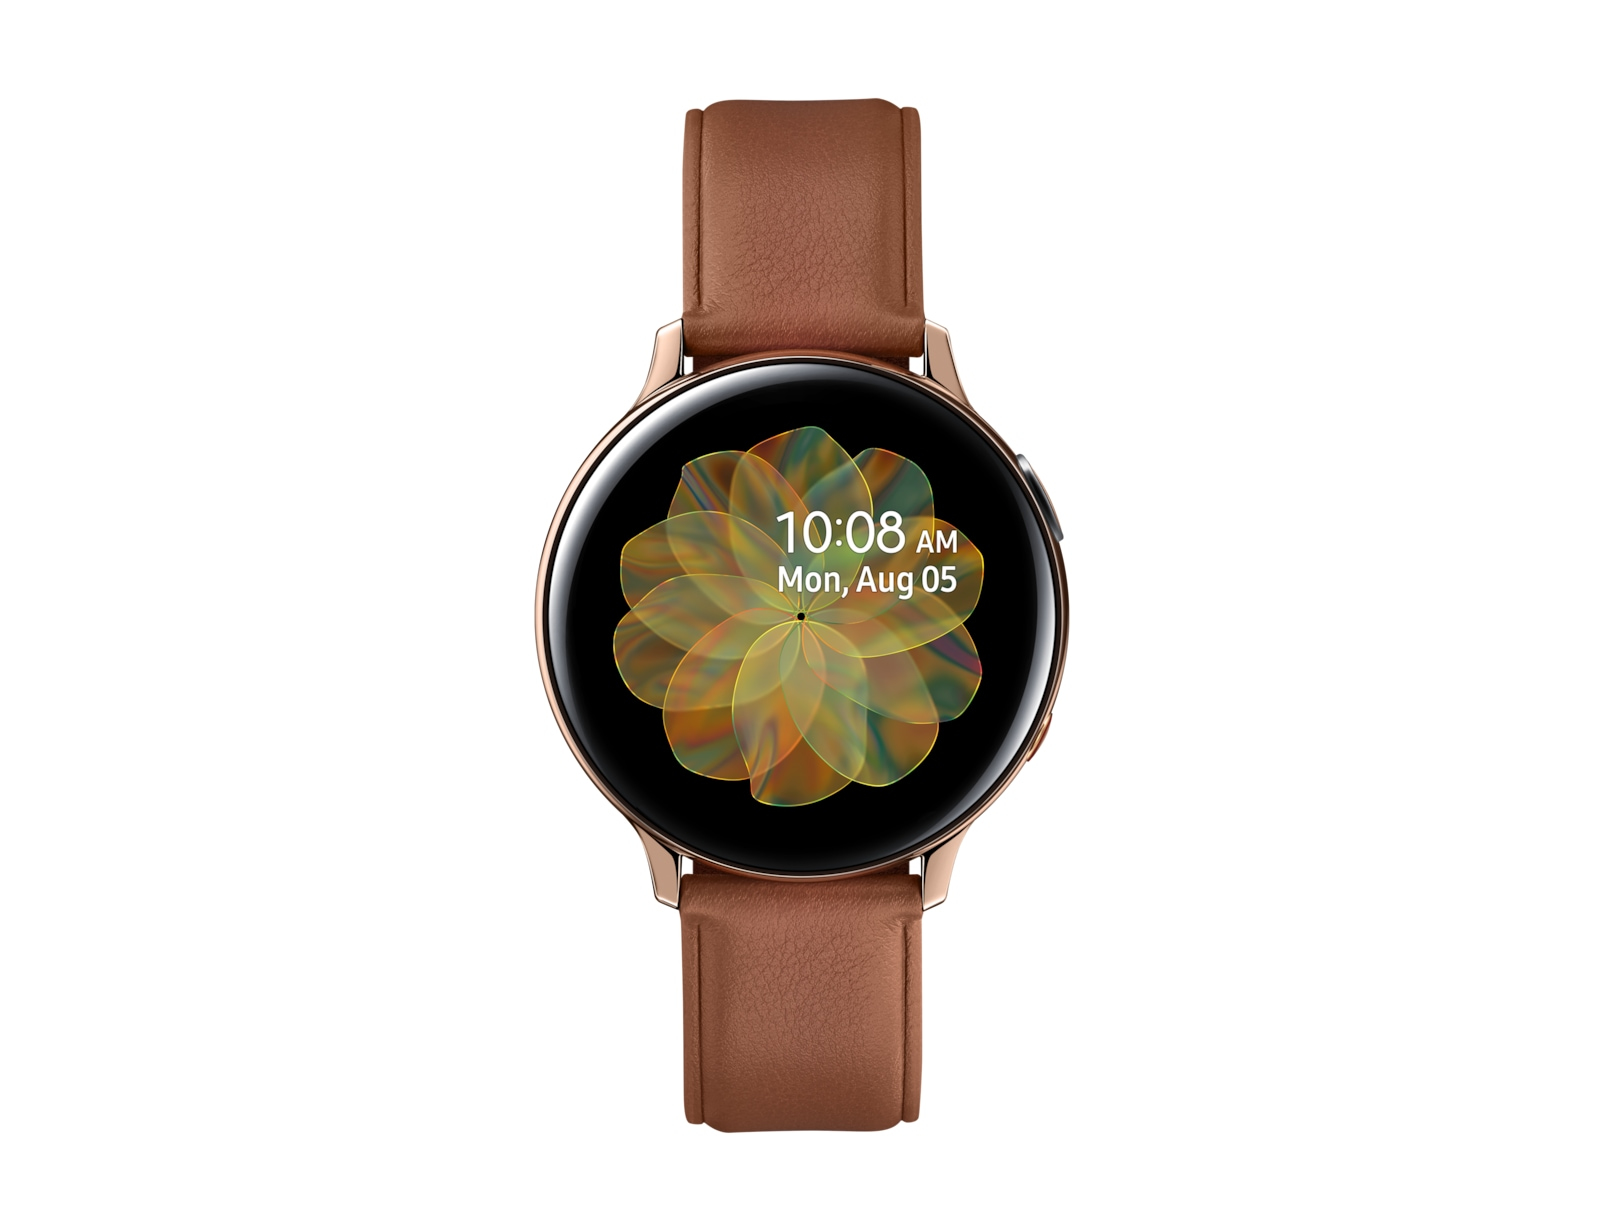 Samsung Galaxy Watch Active 2 smartwatch Gold SAMOLED 3.43 cm (1.35